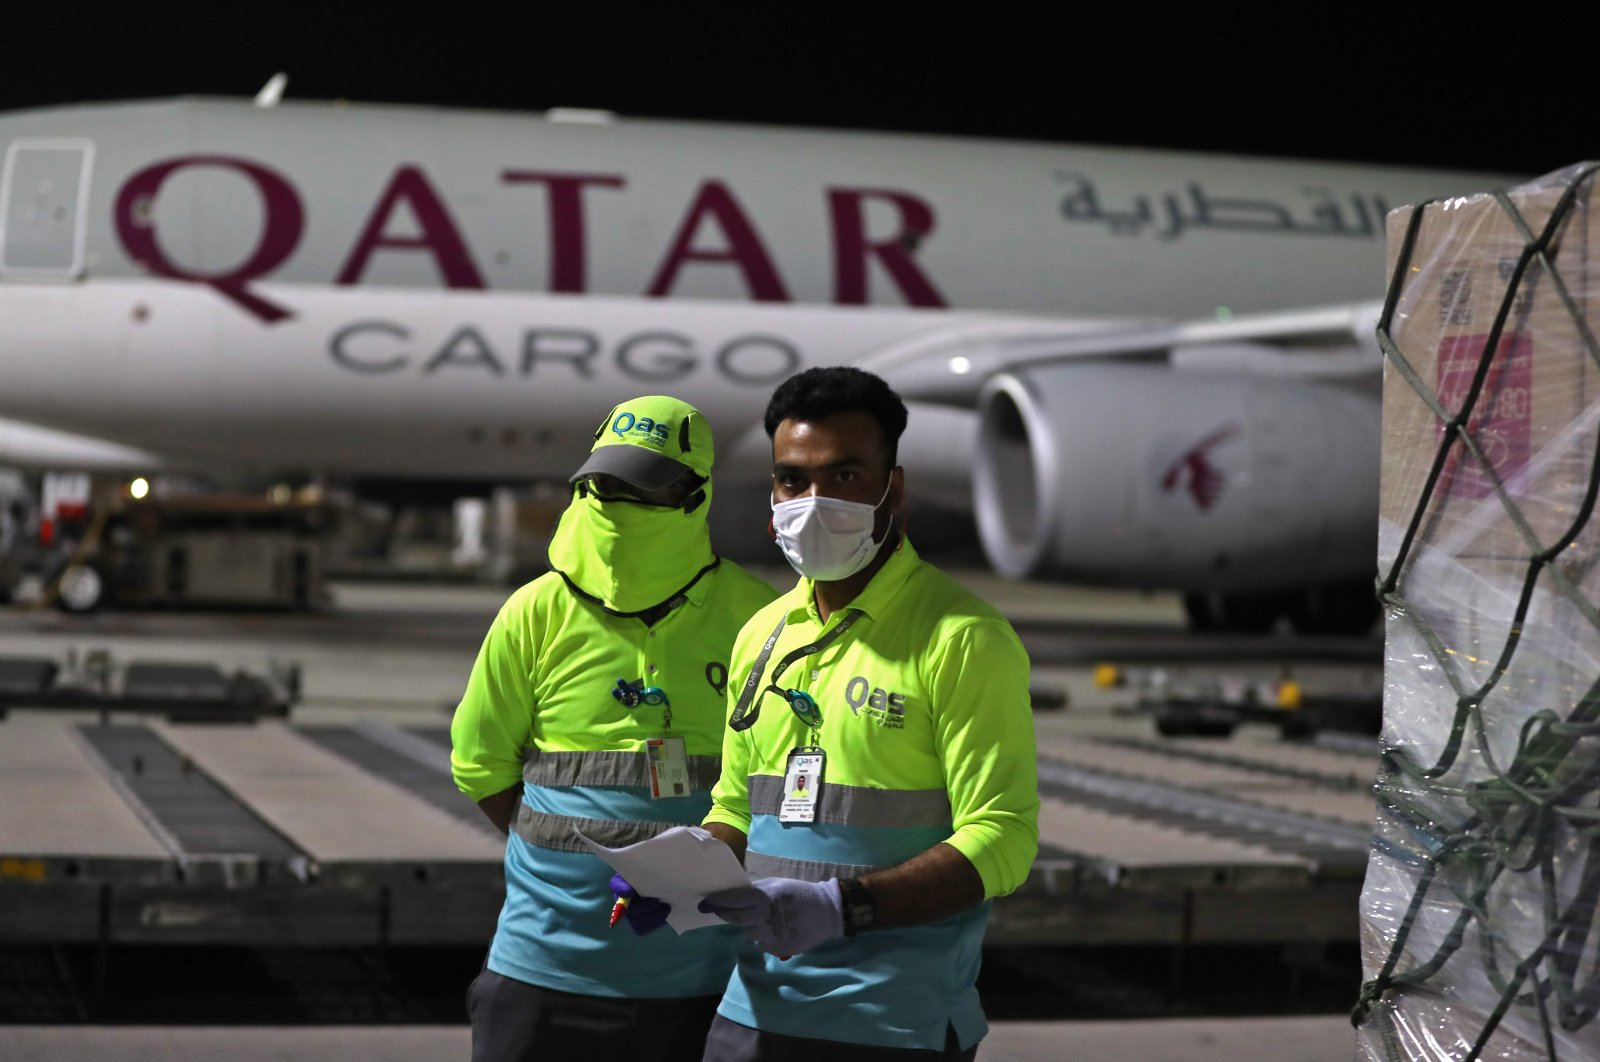 Supplies to tackle the coronavirus pandemic donated by the Qatar Fund for Development are loaded onto a Qatar Airways flight to Kigali, Rwanda, at Hamad International Airport, Doha, Qatar, April 28, 2020. (AFP Photo)